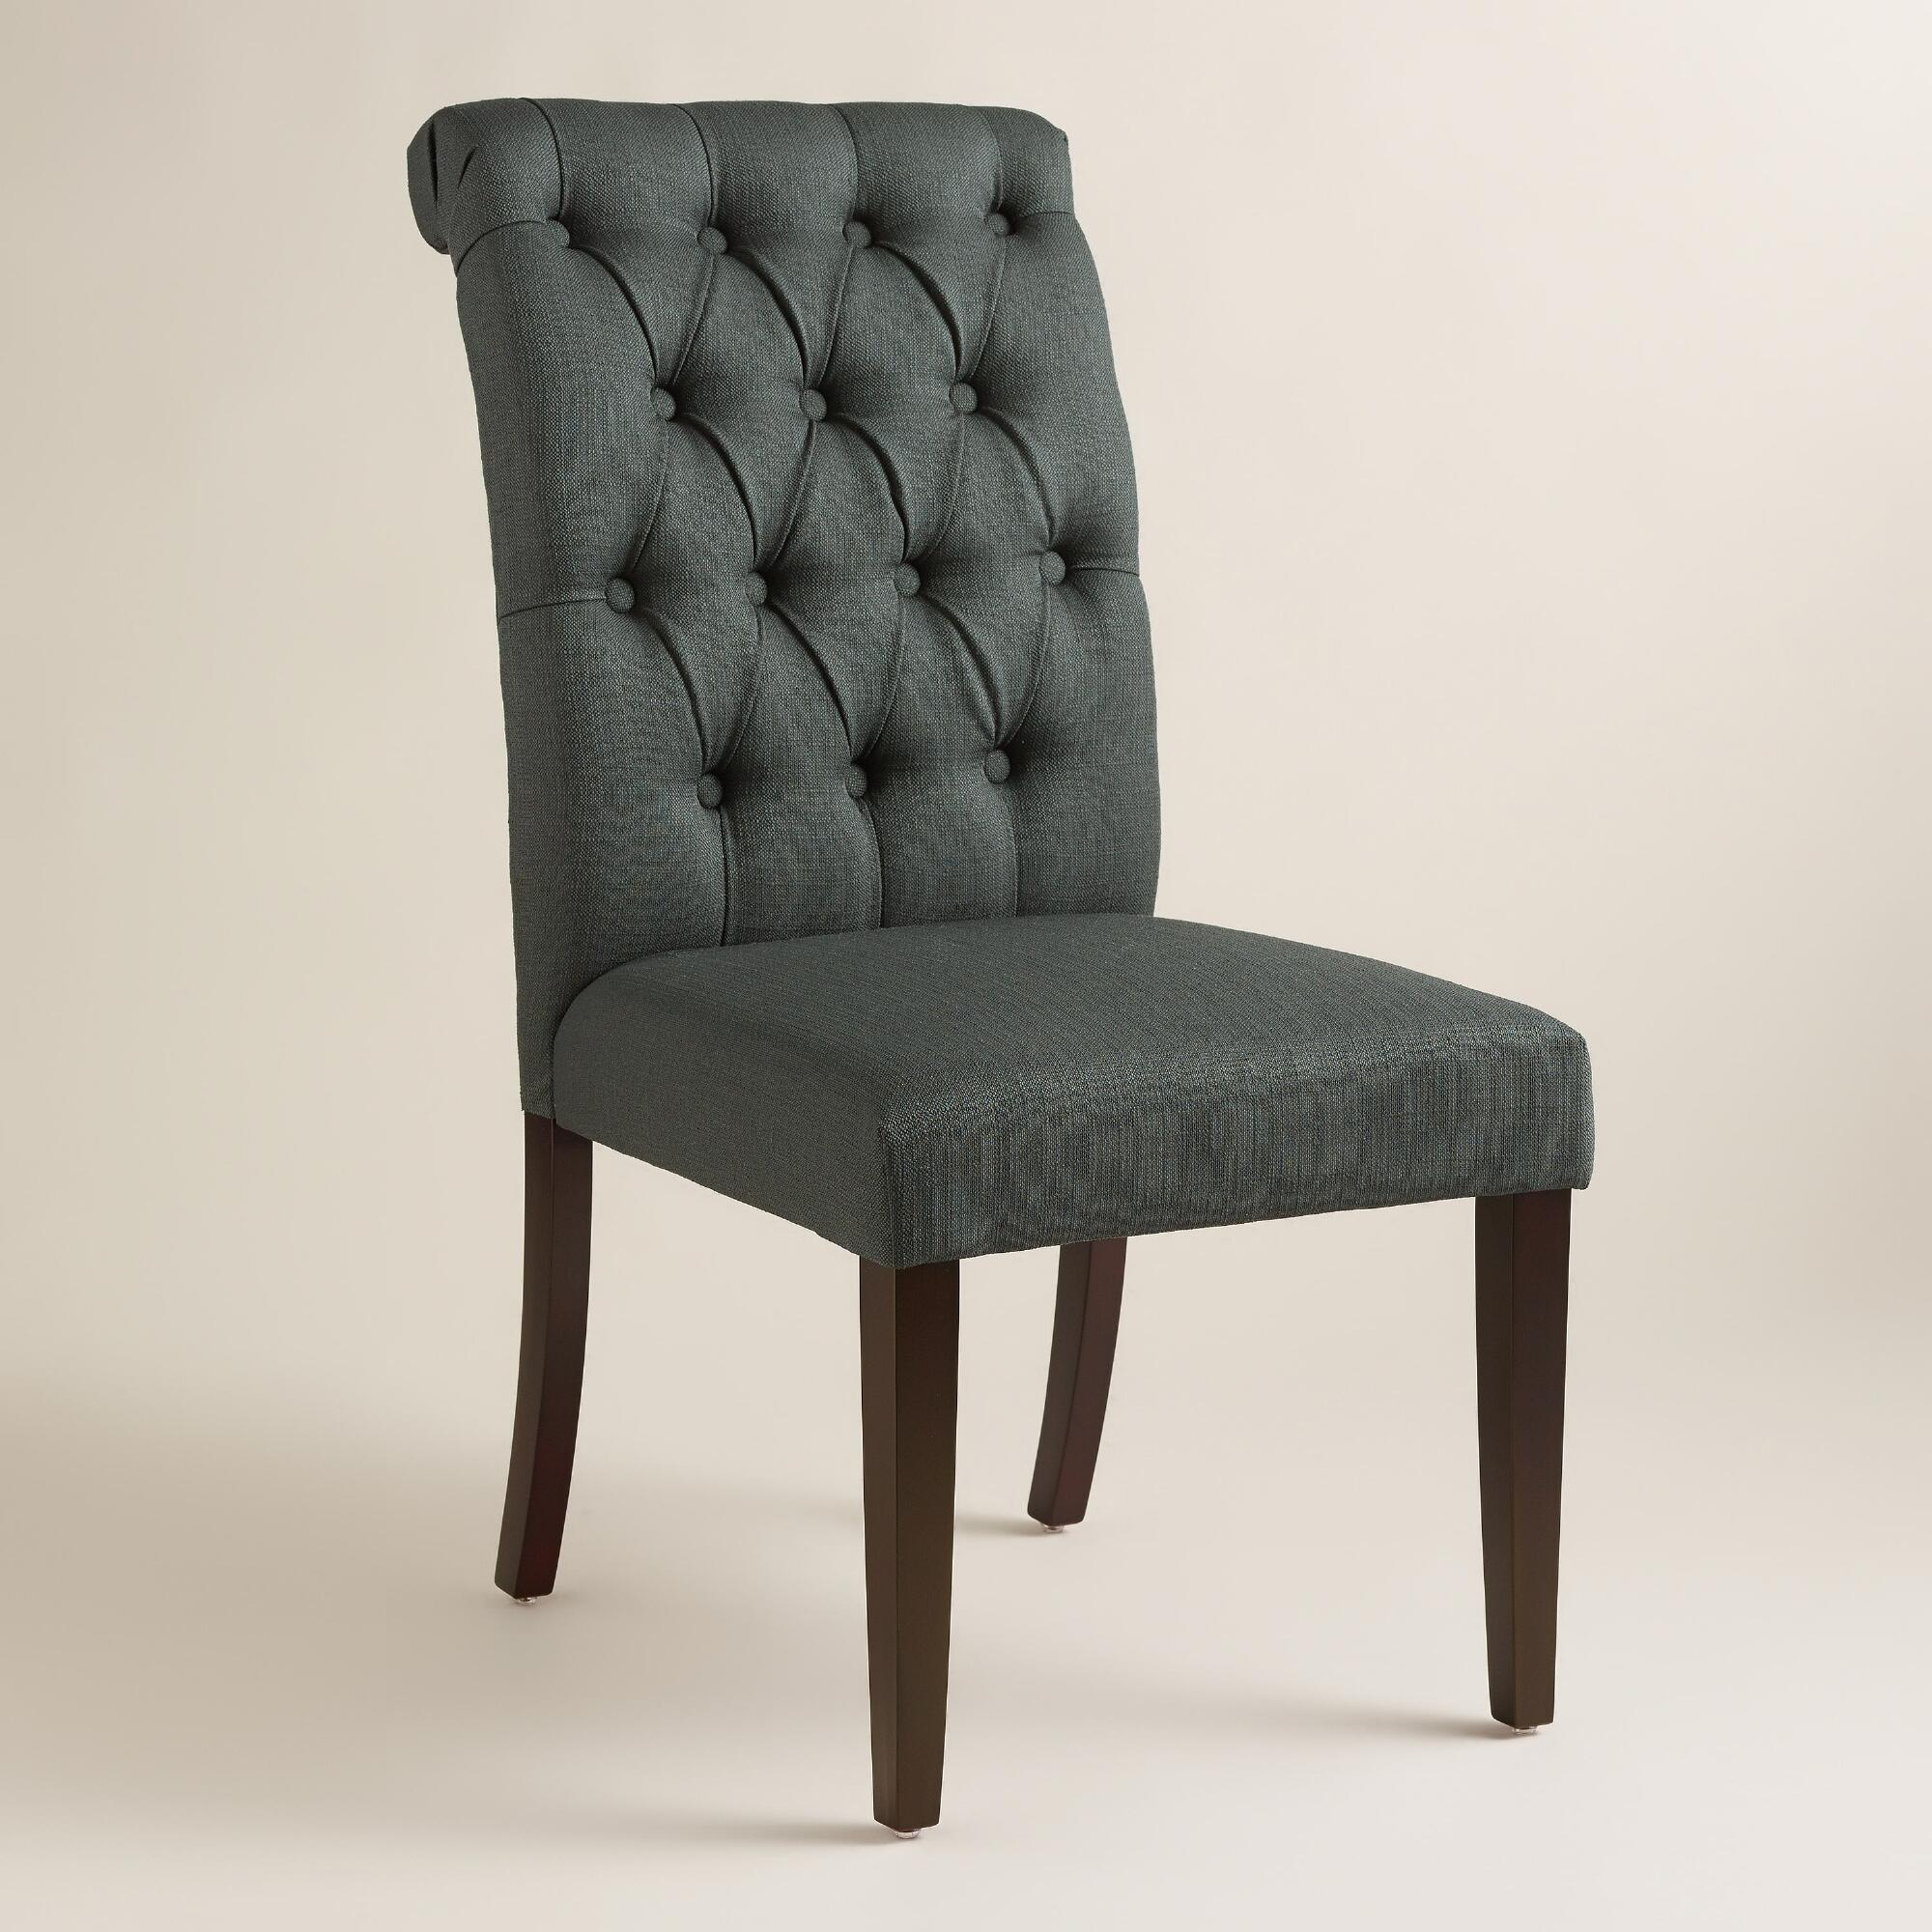 Wingback Dining Chairs | Gray Tufted Dining Chairs | Tufted Dining Chair